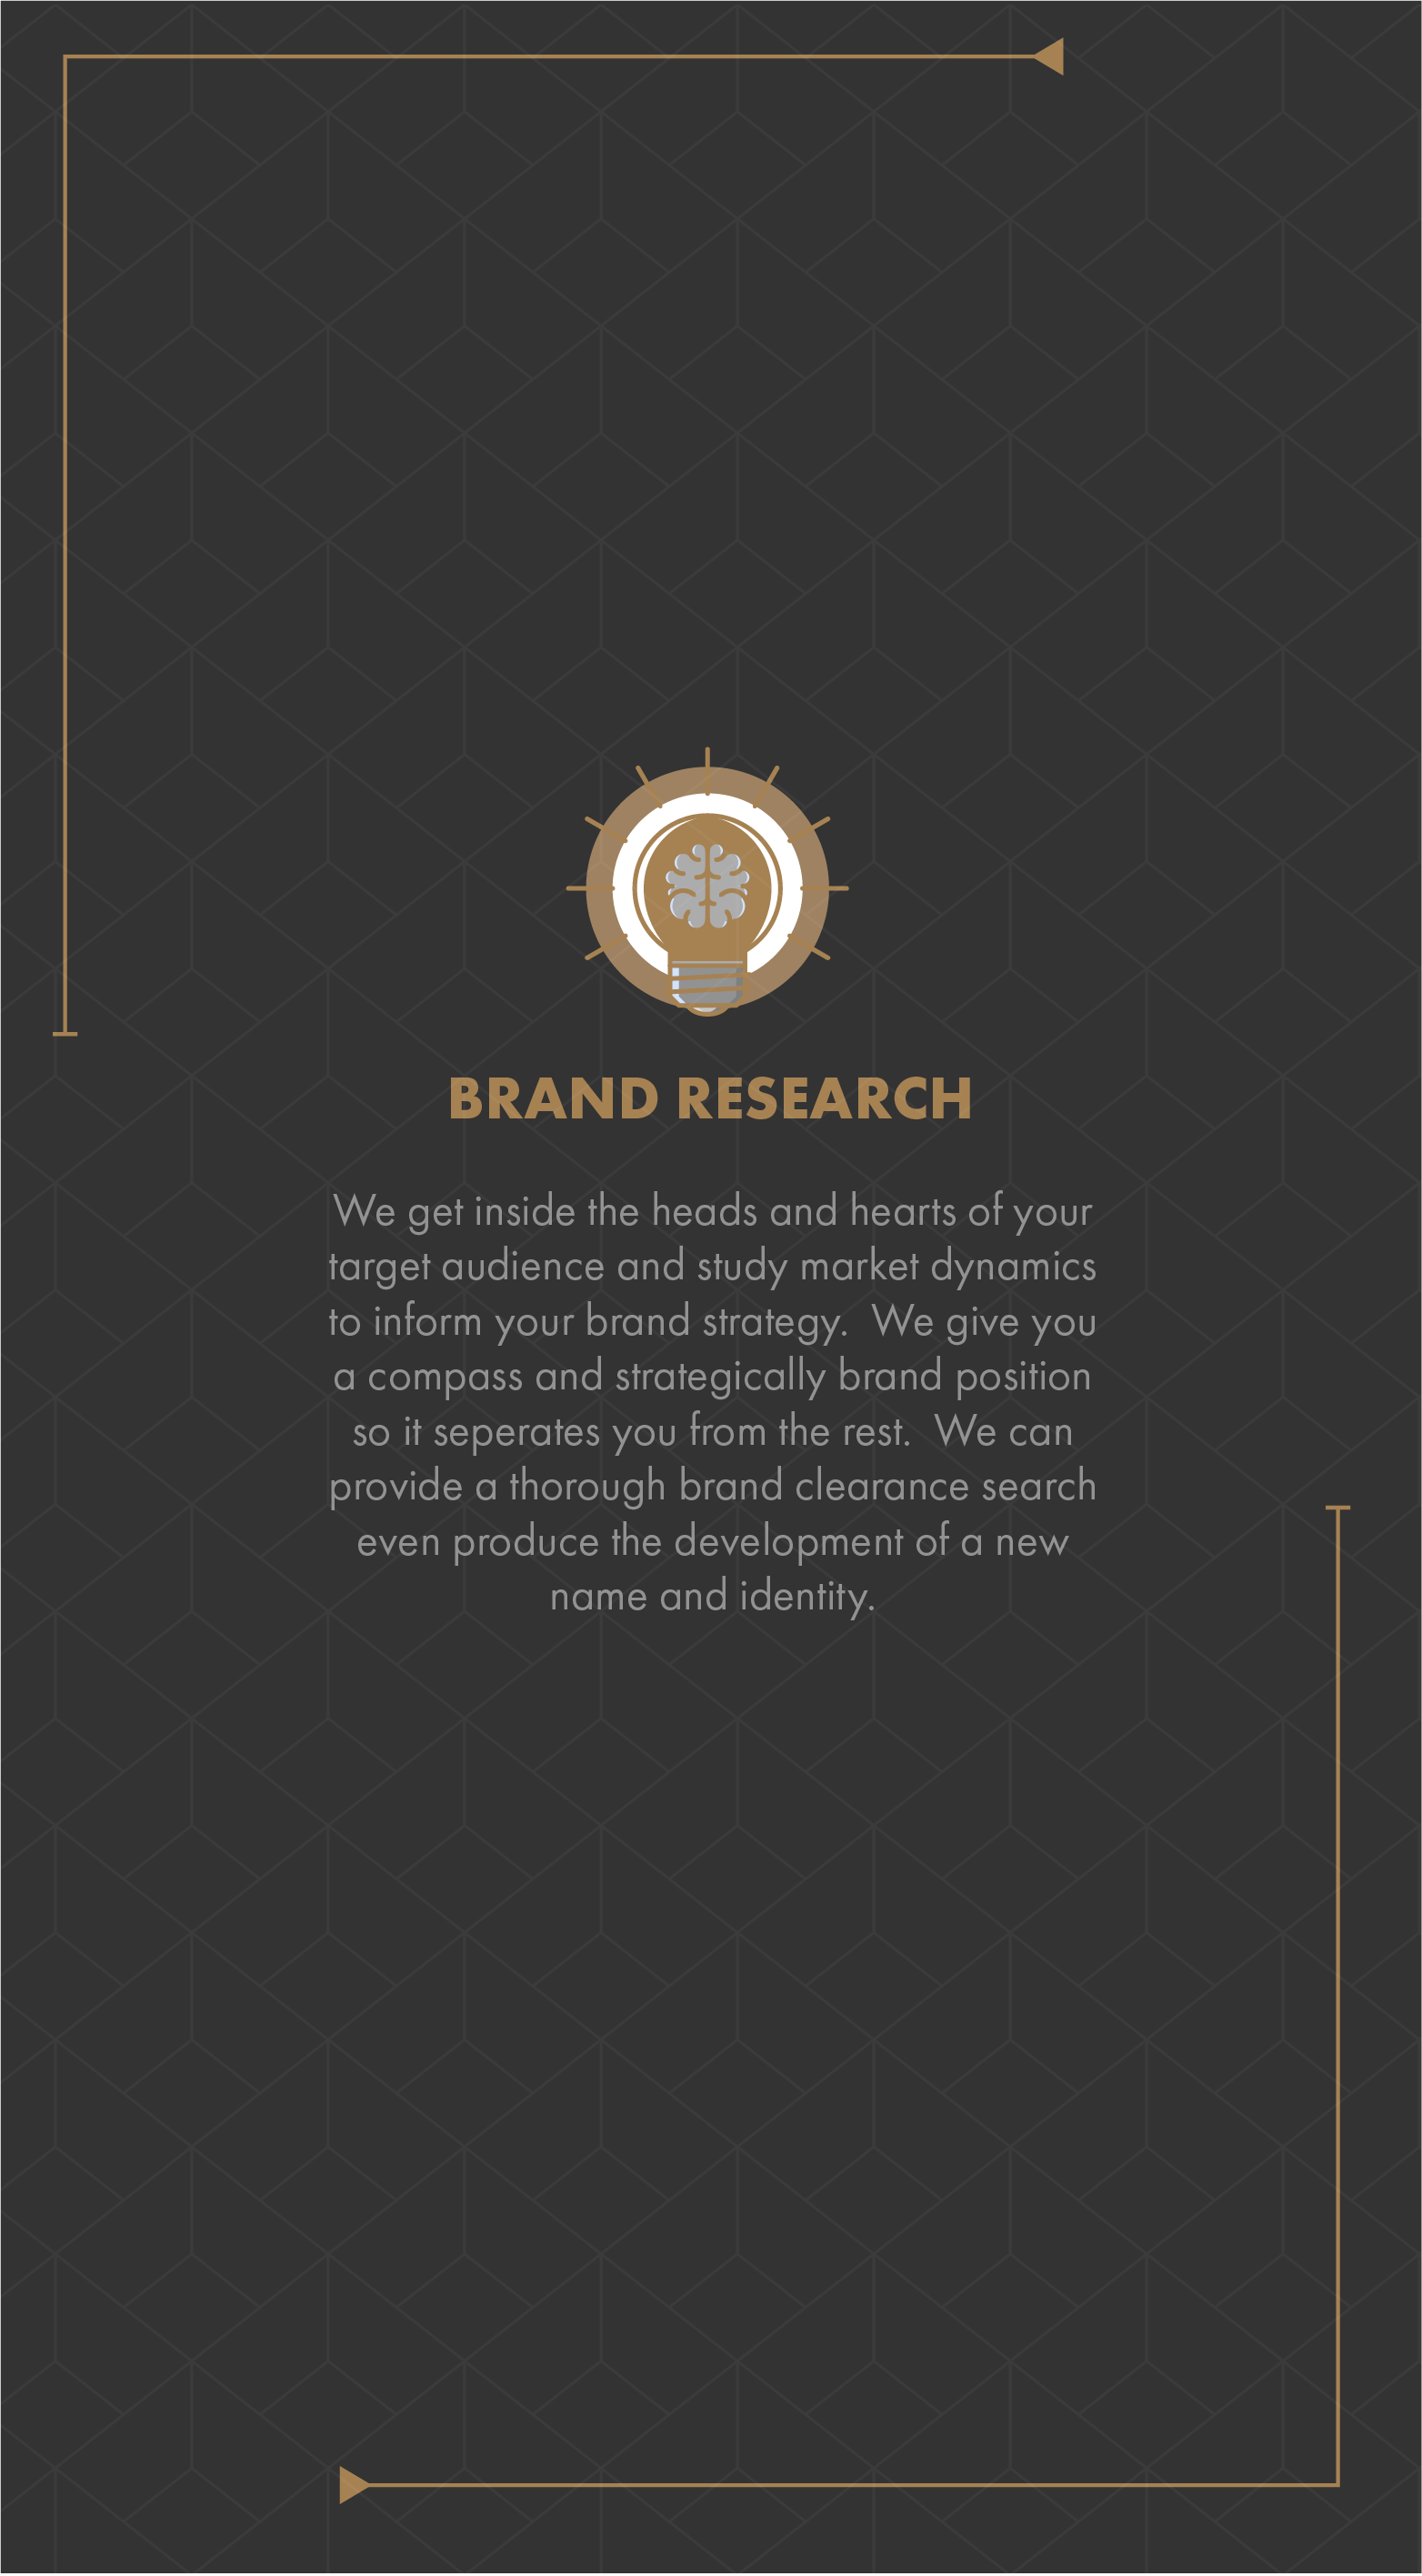 BrandResearch.png